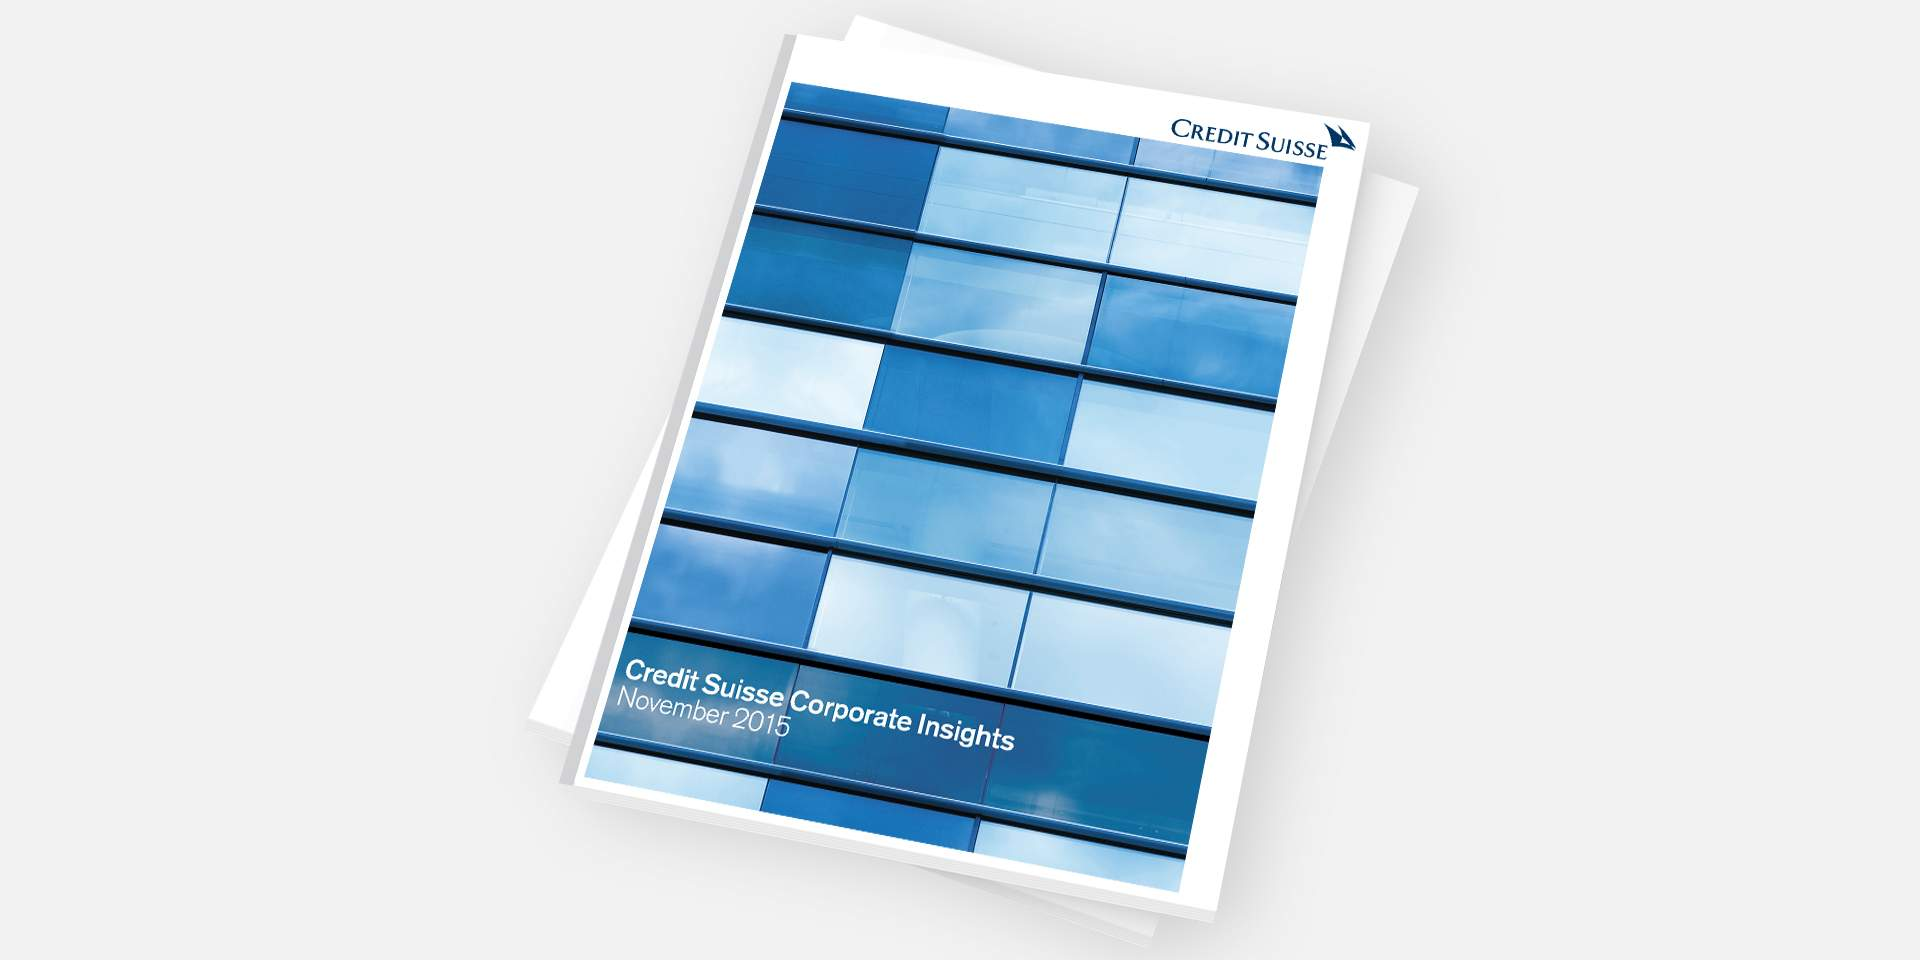 Credit Suisse Corporate Insights